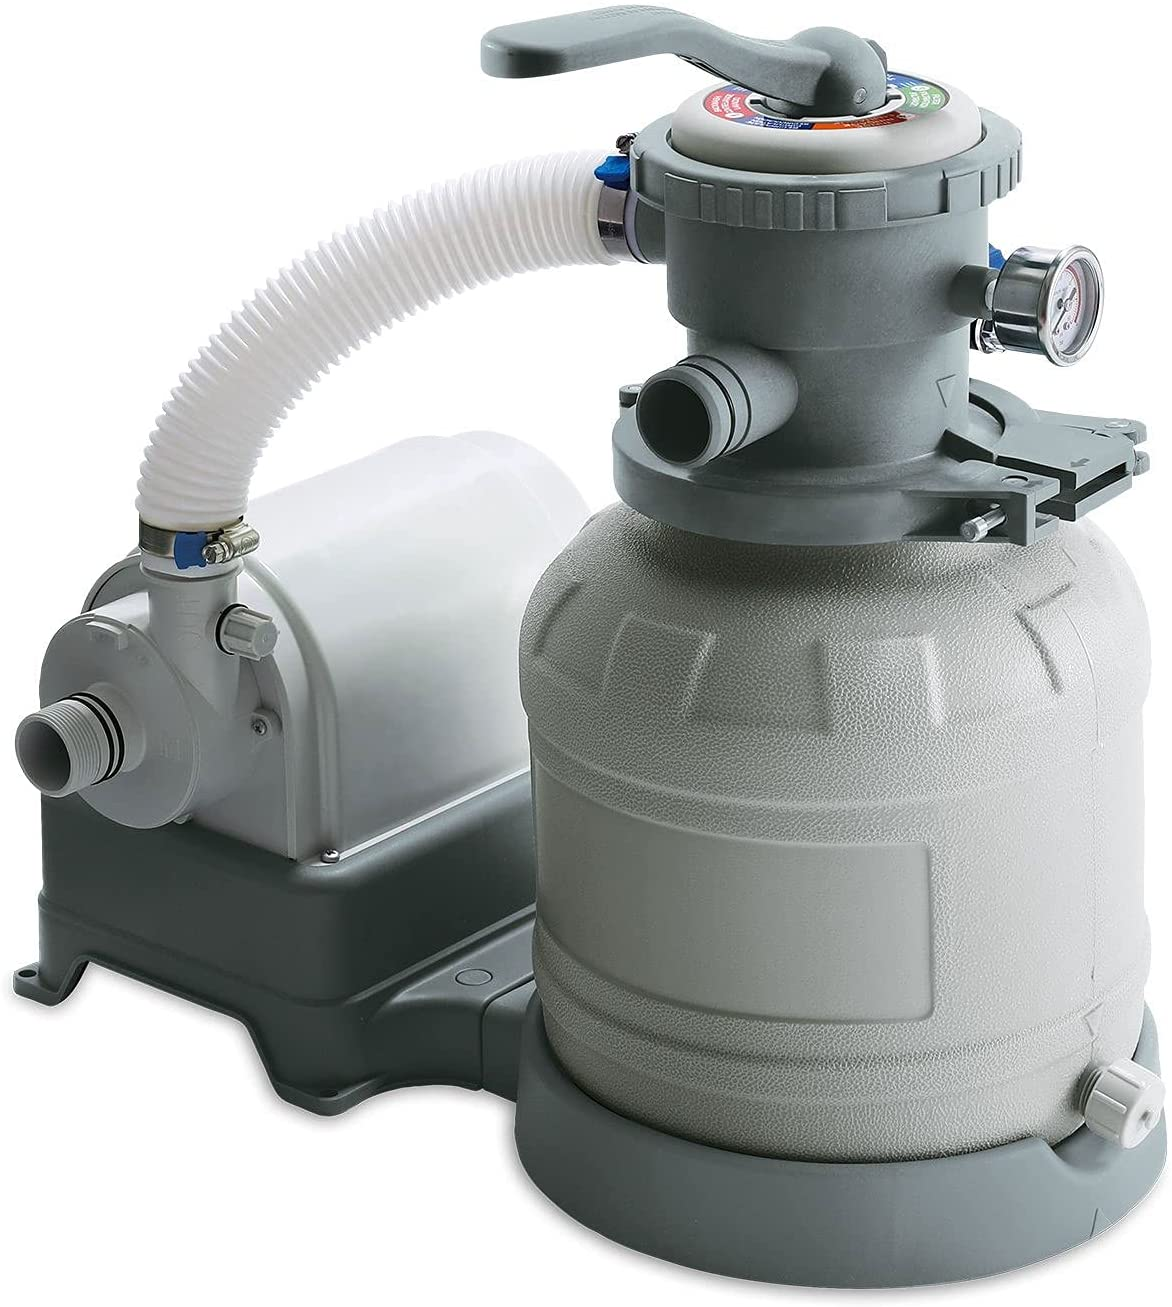 Summer Waves P53ST1100 Universal 10 Inch Sand Filter Pump Pool Cleaning System with 6 Function Handle for Above Ground Swimming Pool